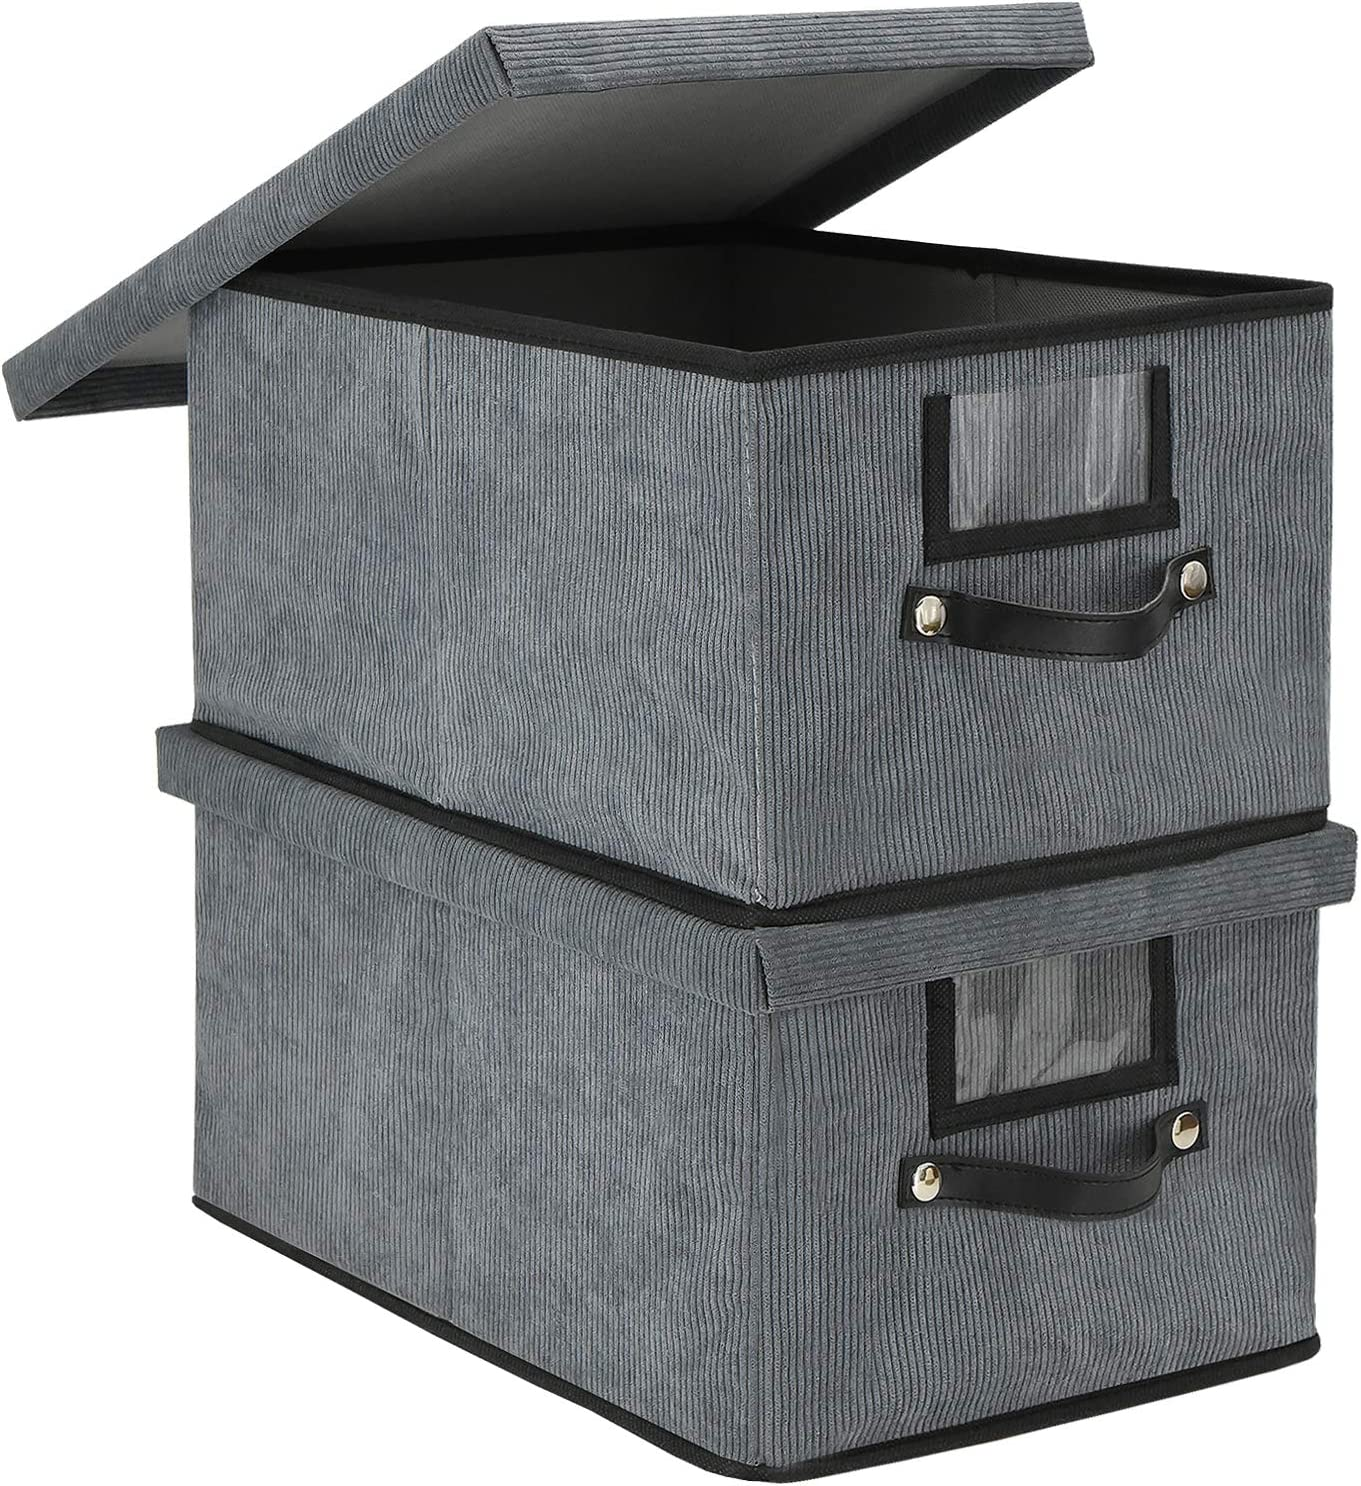 Decorative Financial Now on sale sales sale Storage Baskets Bins with 2 Lids Large Foldable Pack